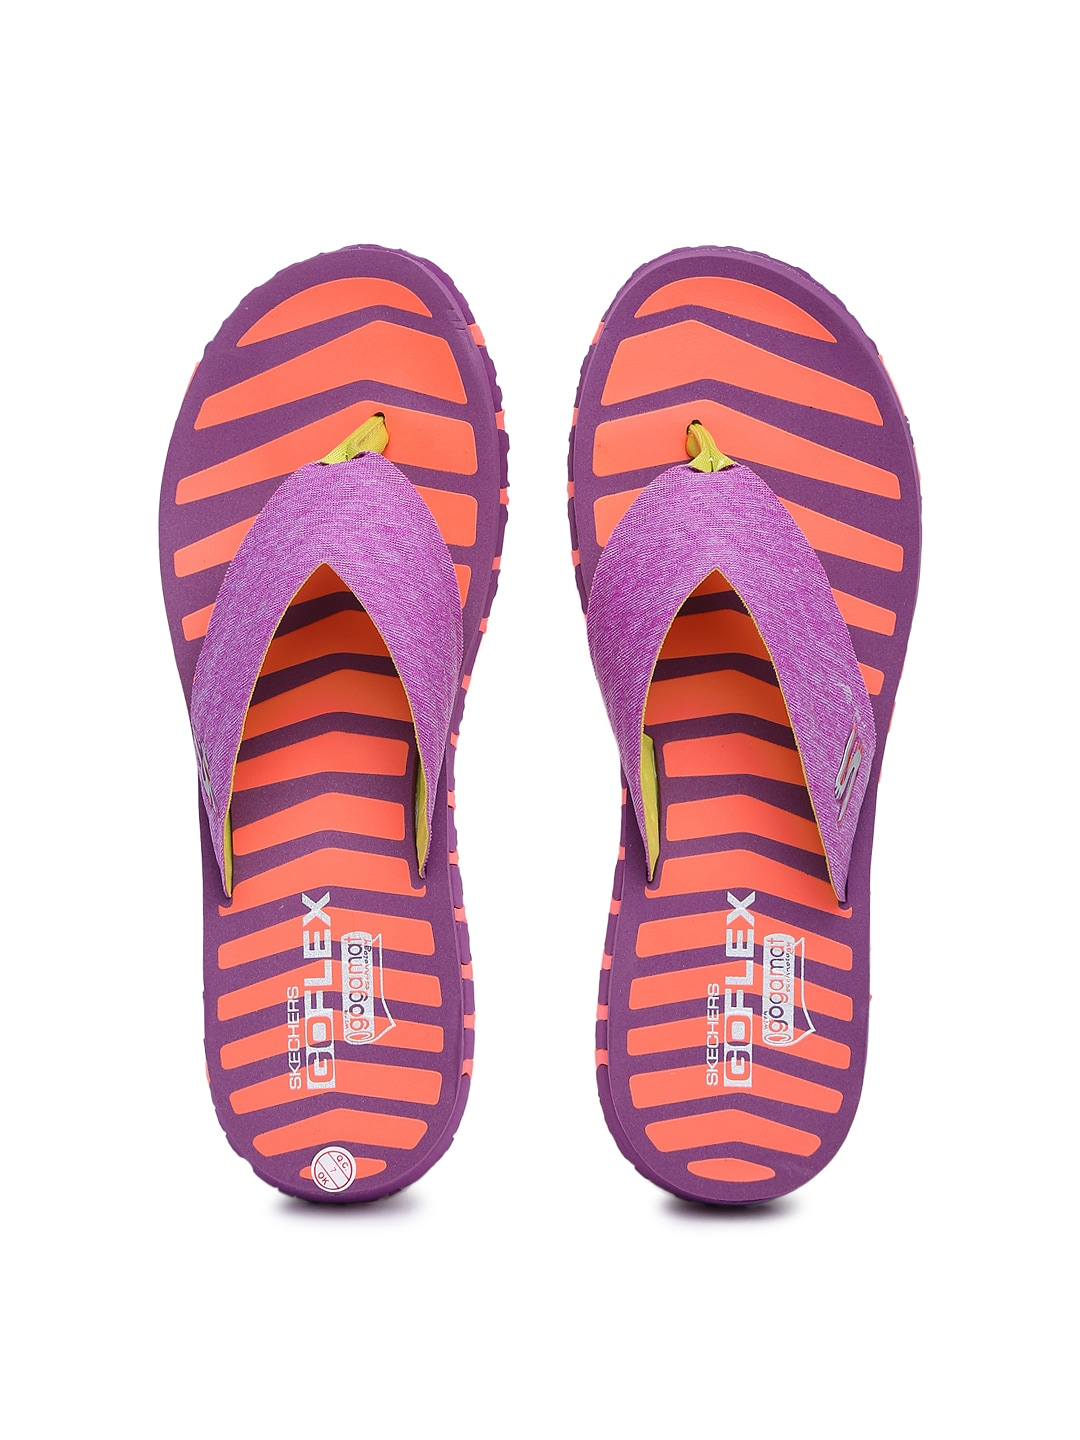 84870b925144 Skechers 14258-pror Women Purple And Orange Stripedn Go Flex Vitality Flip  Flops- Price in India